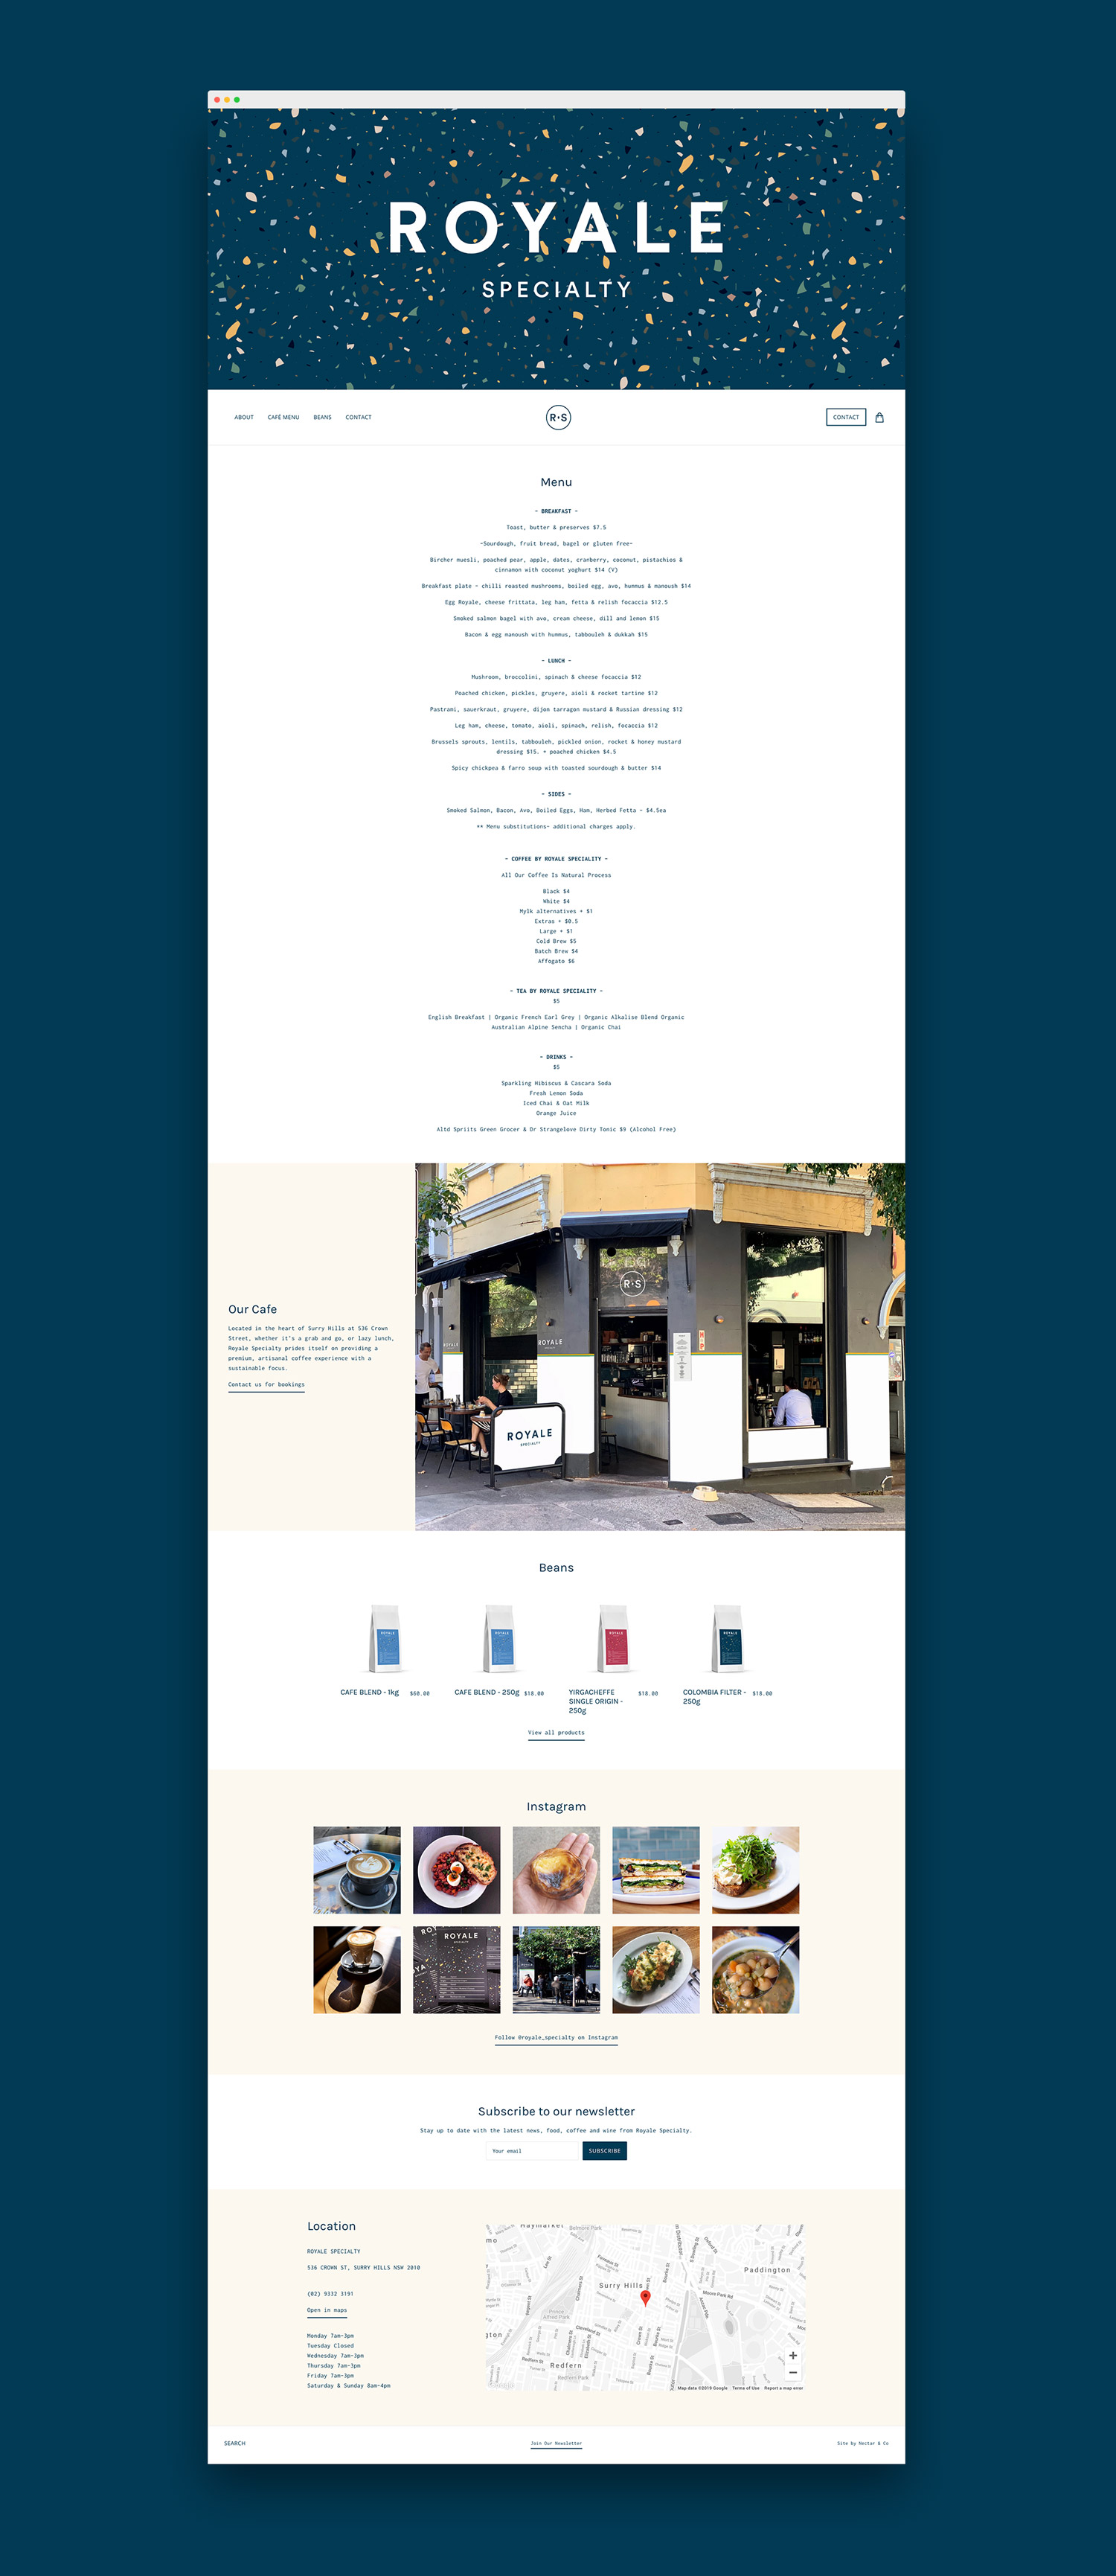 Nectar-&-Co-Royale-Specialty-Cafe-Website-Design-Homepage.jpg